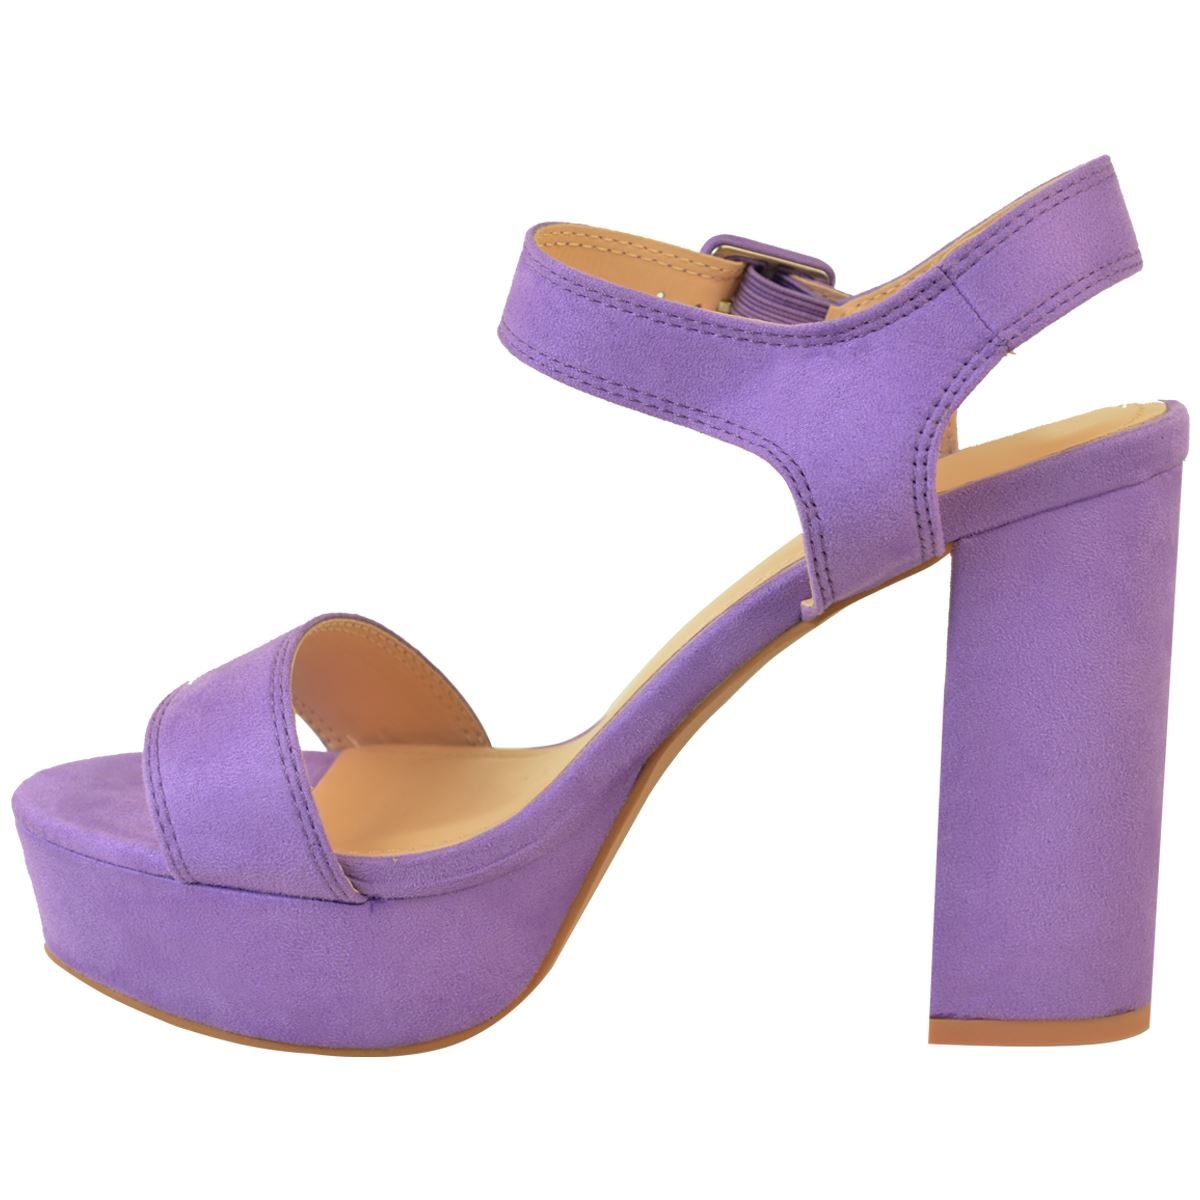 New-Womens-Summer-Platform-High-Heel-Sandals-Ladies-Open-Toe-Strappy-Party-Shoes thumbnail 30